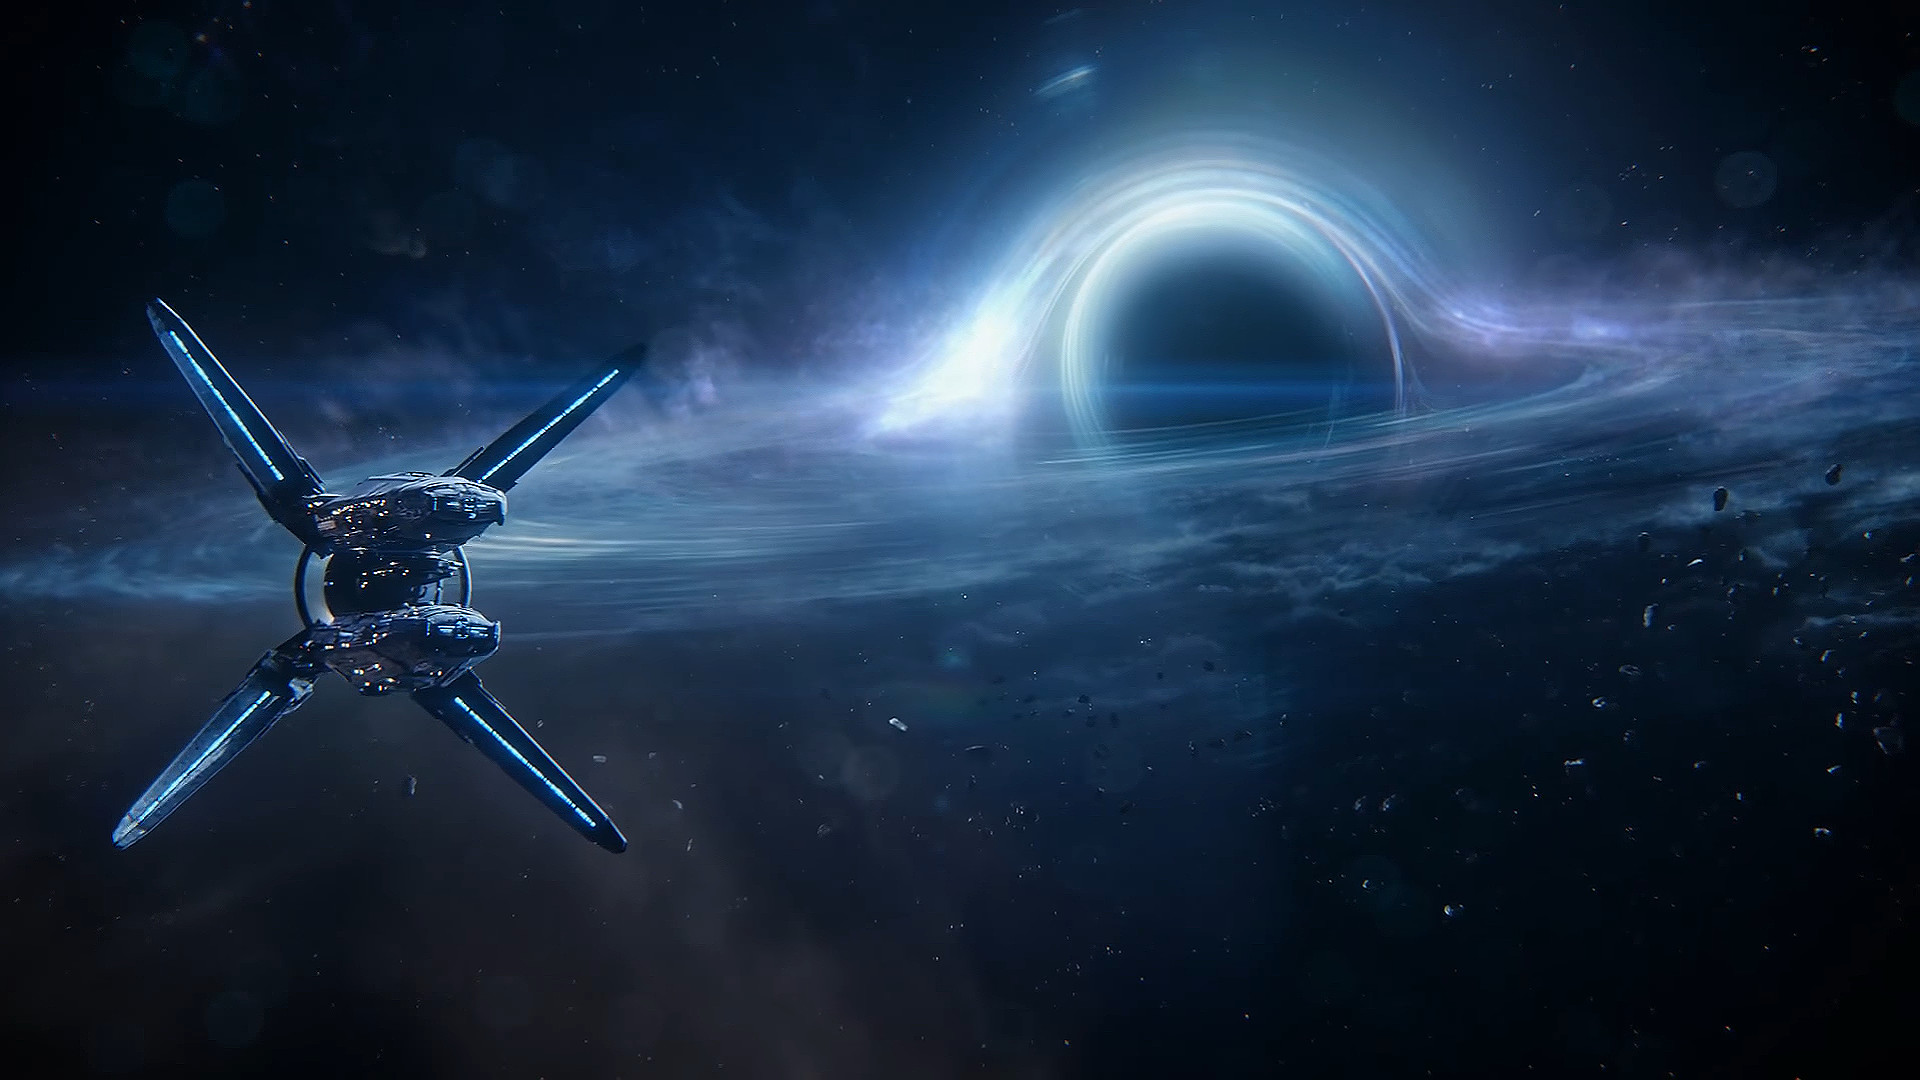 Andromeda Galaxy Wallpaper Iphone Mass Effect Space Wallpaper 74 Images